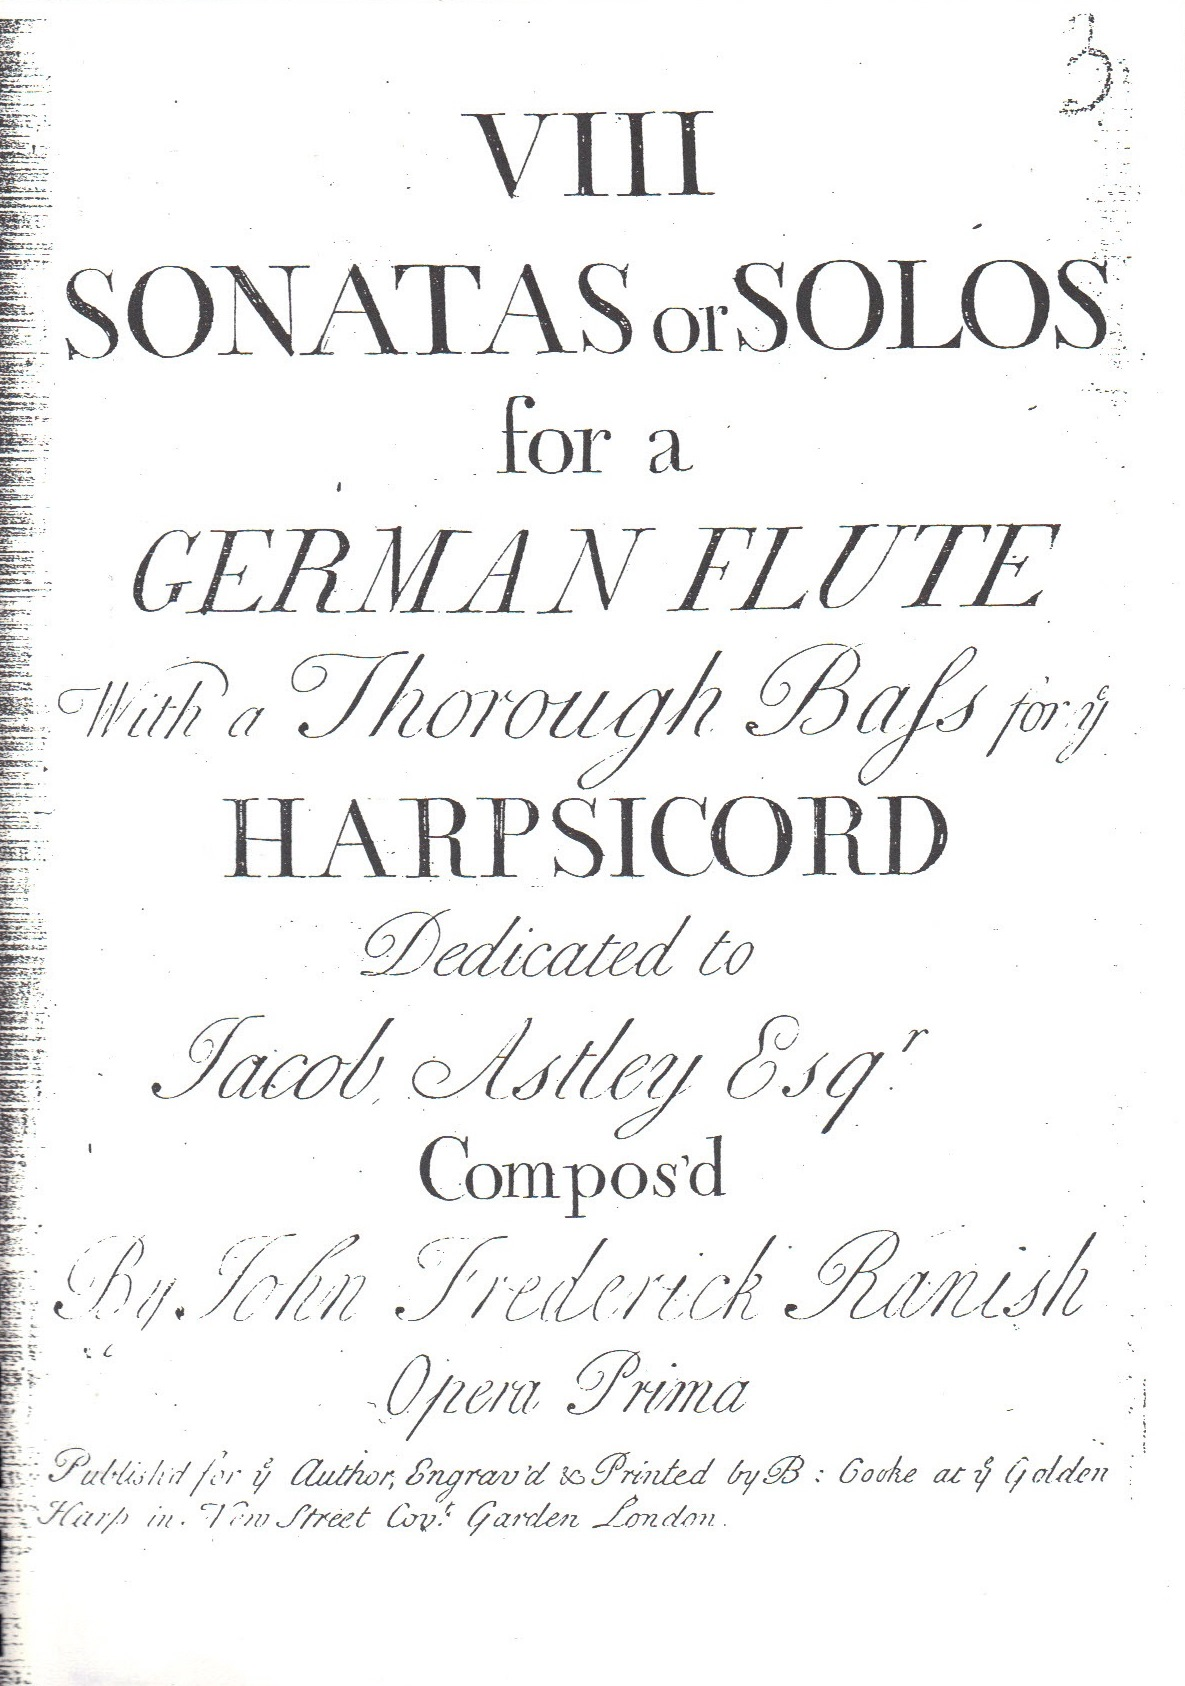 Cover of the set of 8 flute sonatas.  Published 1735.